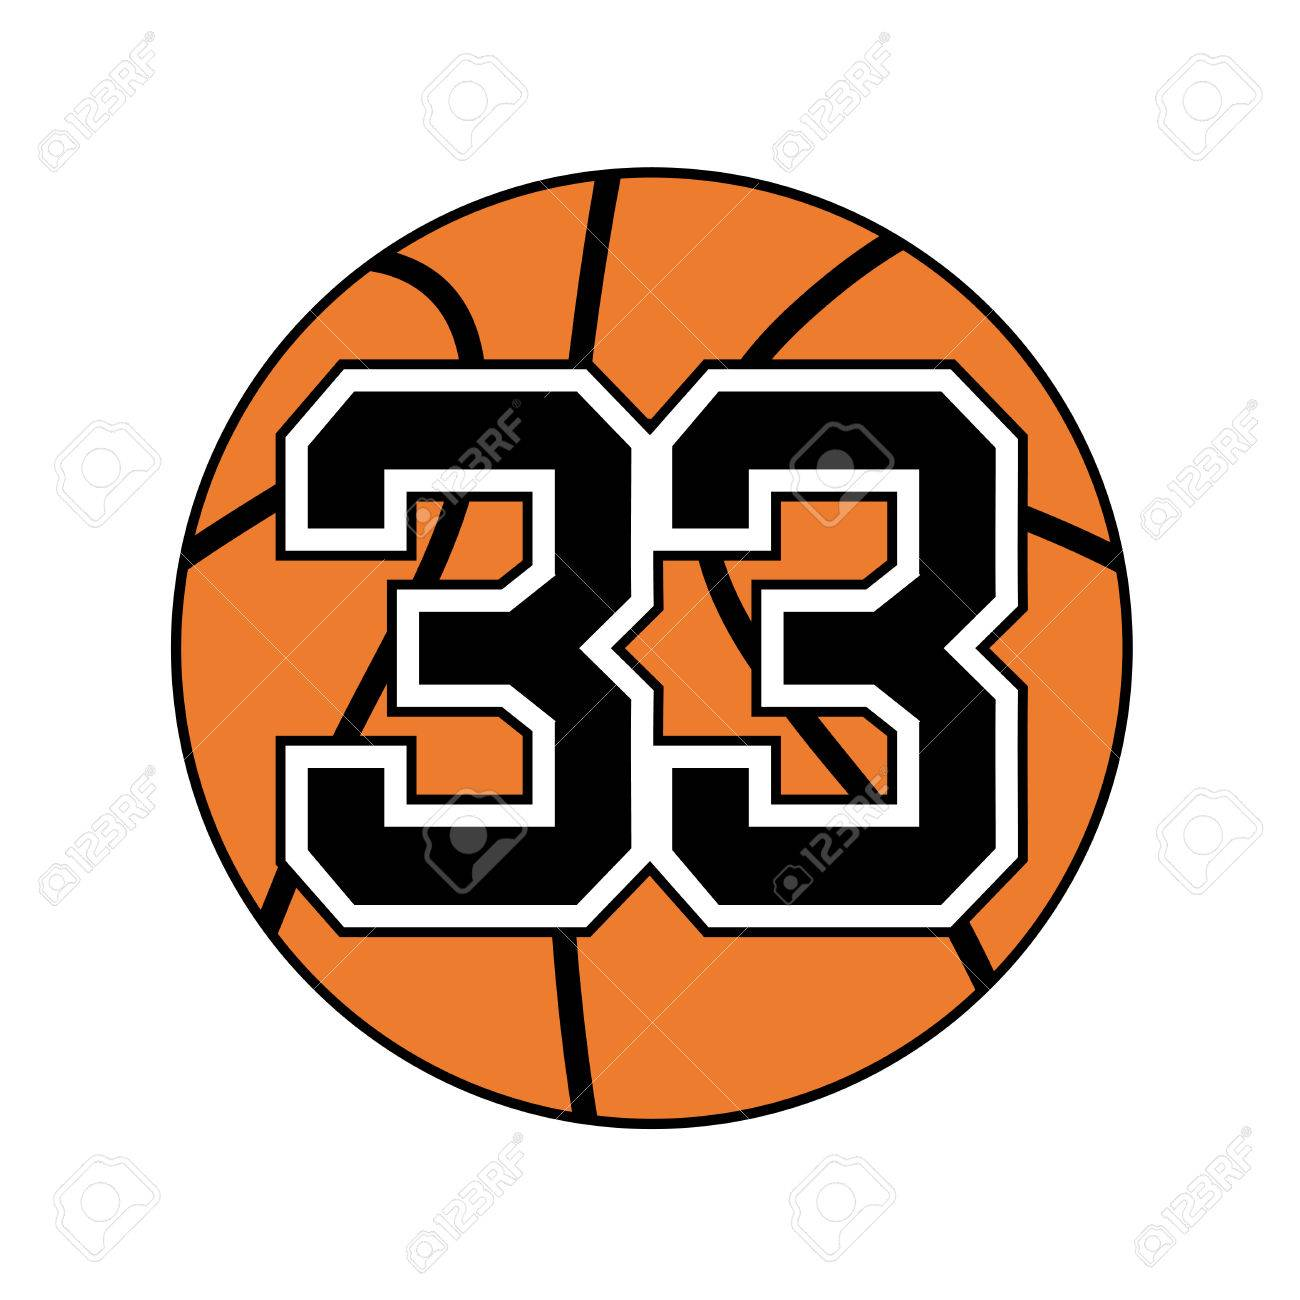 ball of basketball symbol with number 33 royalty free cliparts